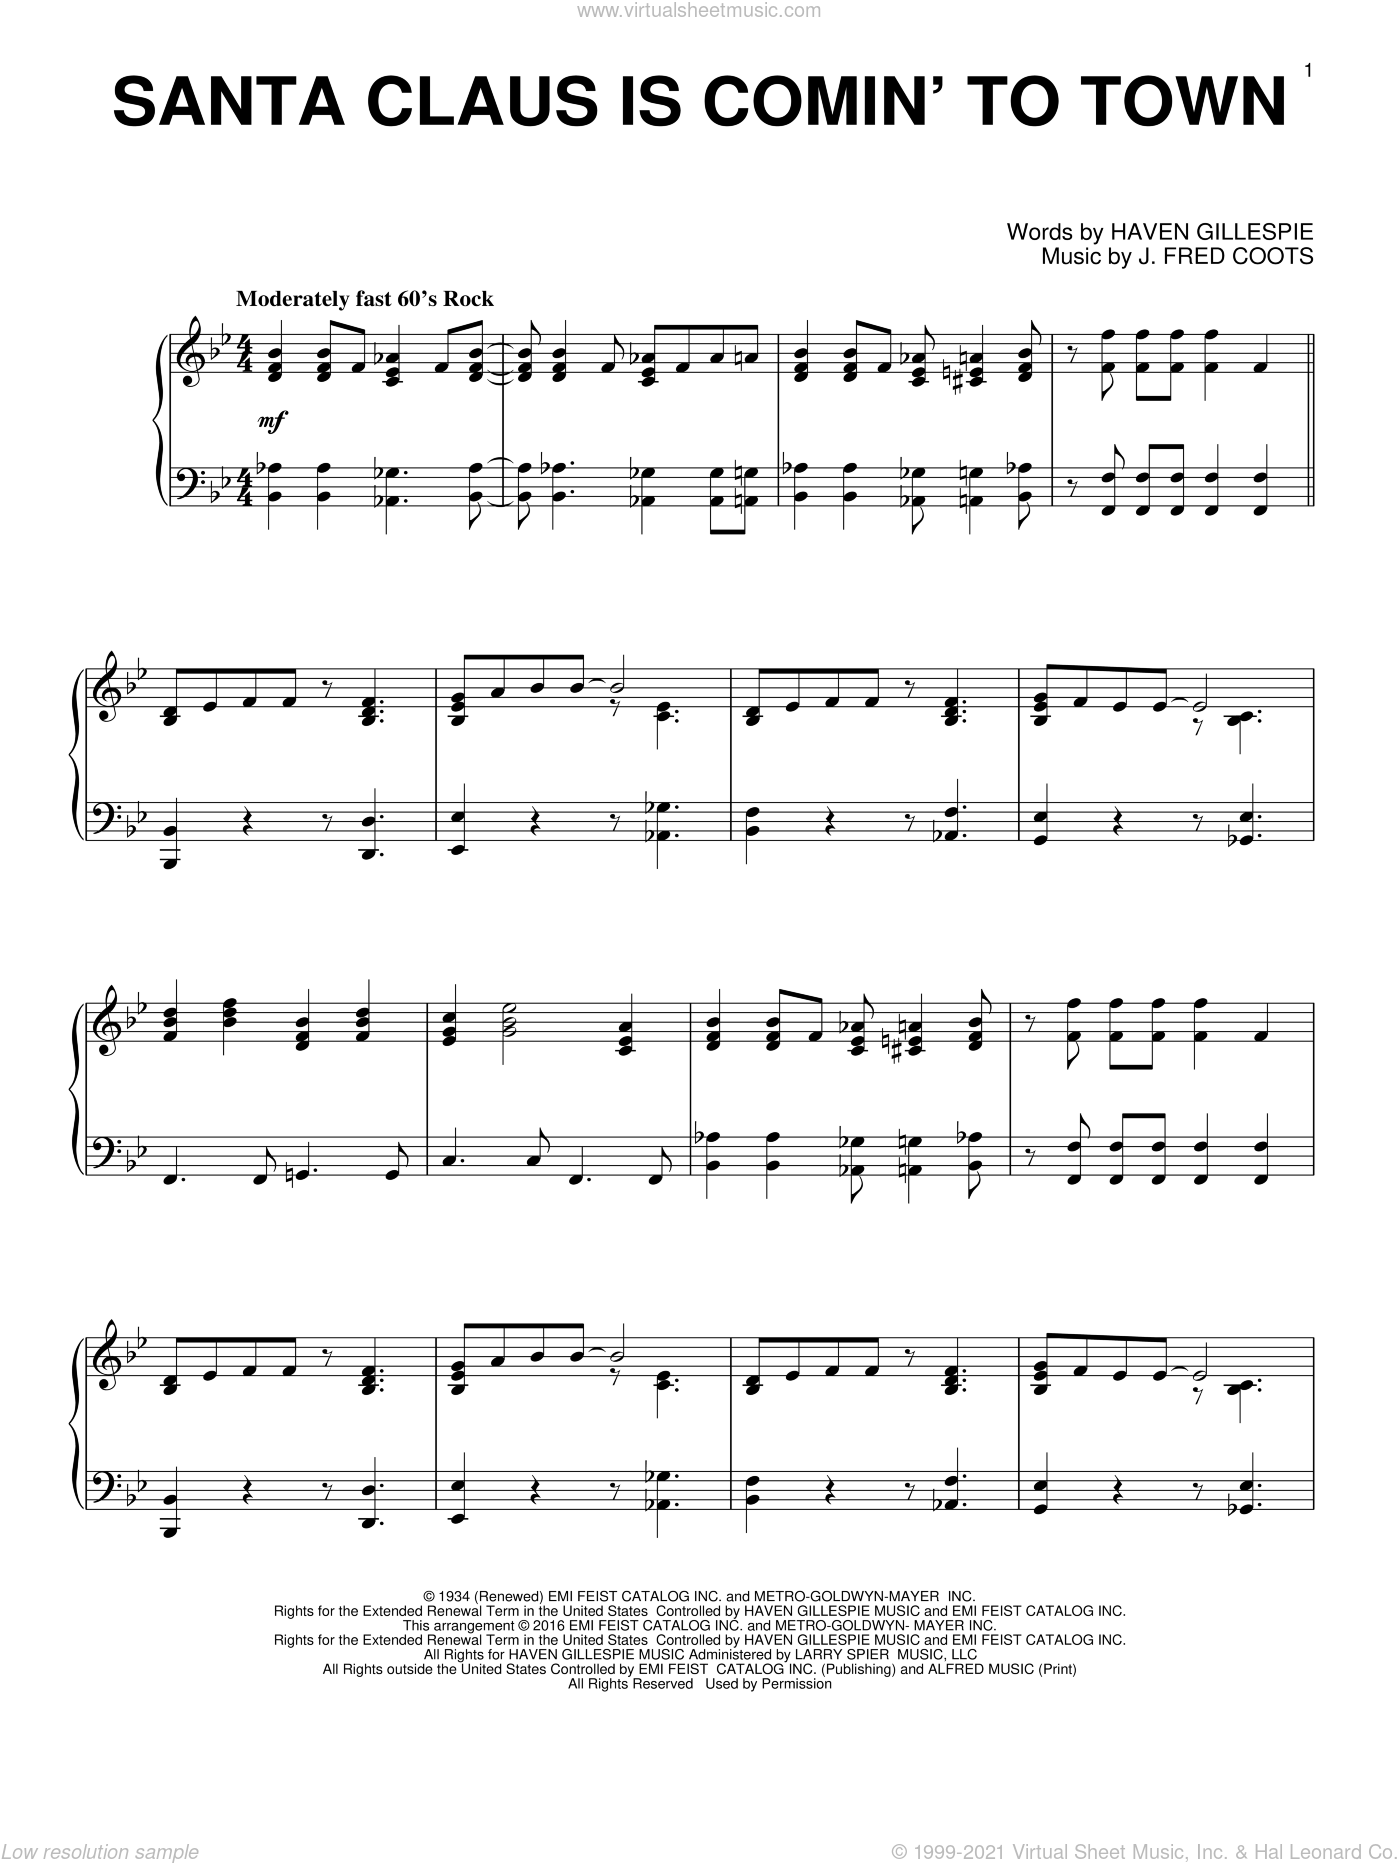 Santa Claus Is Comin' To Town sheet music for piano solo by J. Fred Coots, intermediate skill level